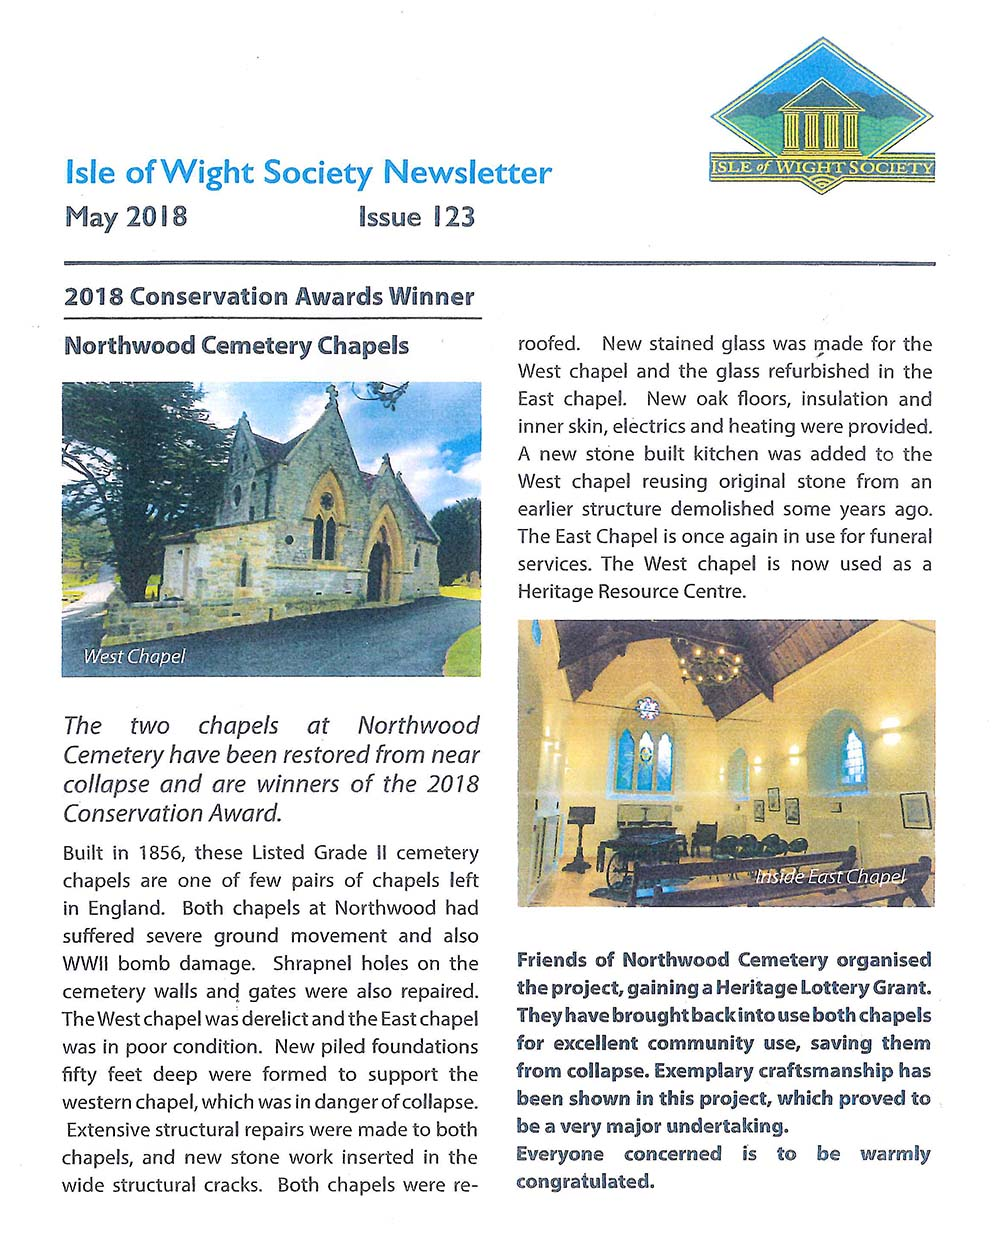 Northwood Cemetery_Radley House Partnership_Conservation_Architecture_Isle of Wight.jpg